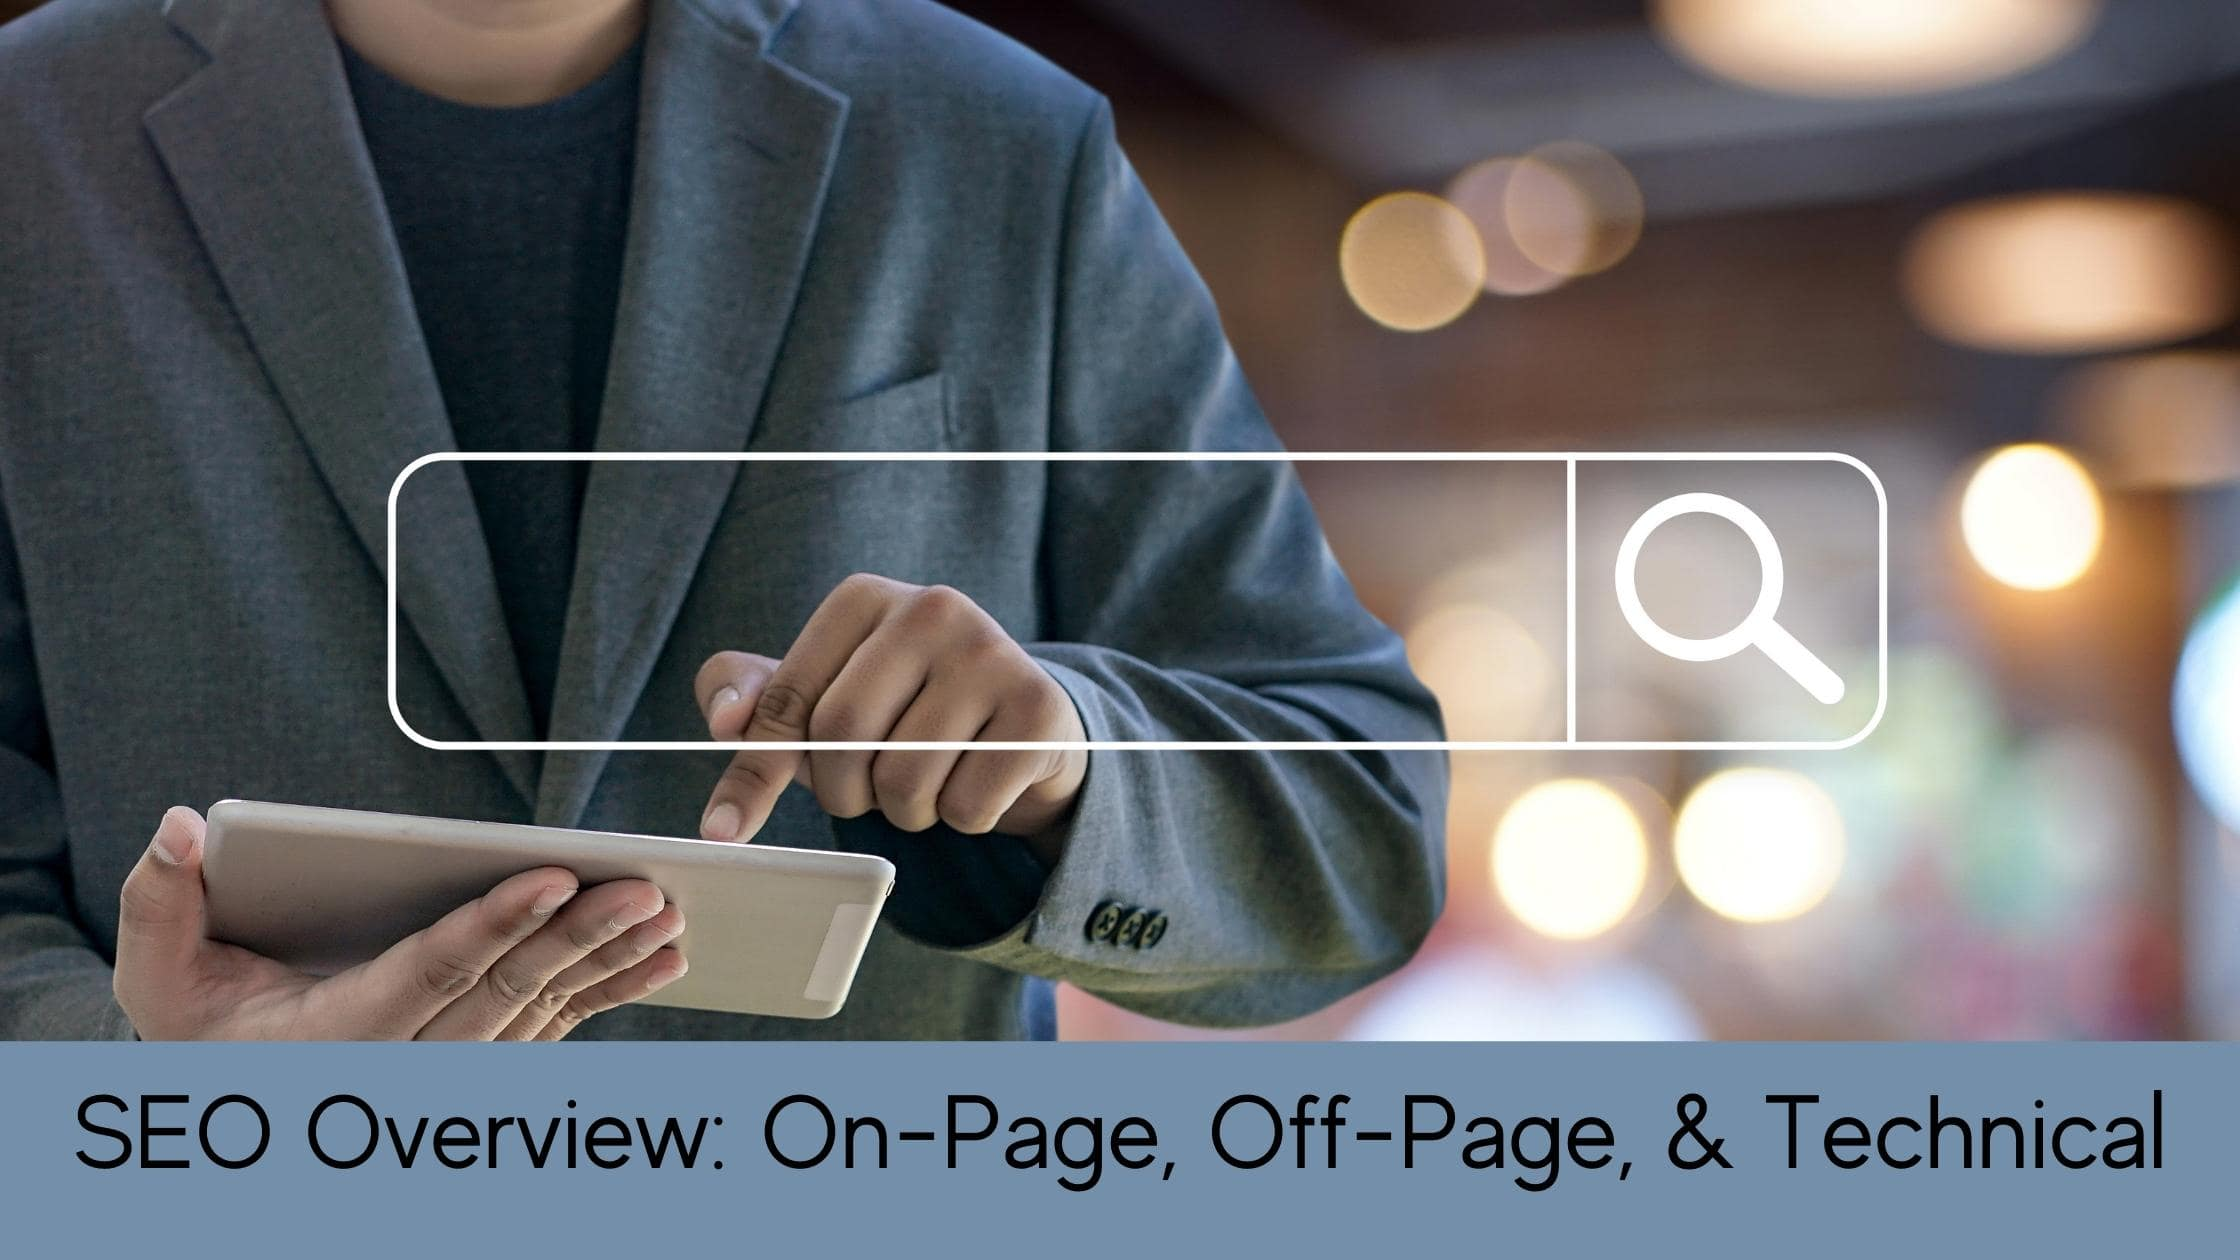 SEO Overview On-Page, Off-Page, & Technical